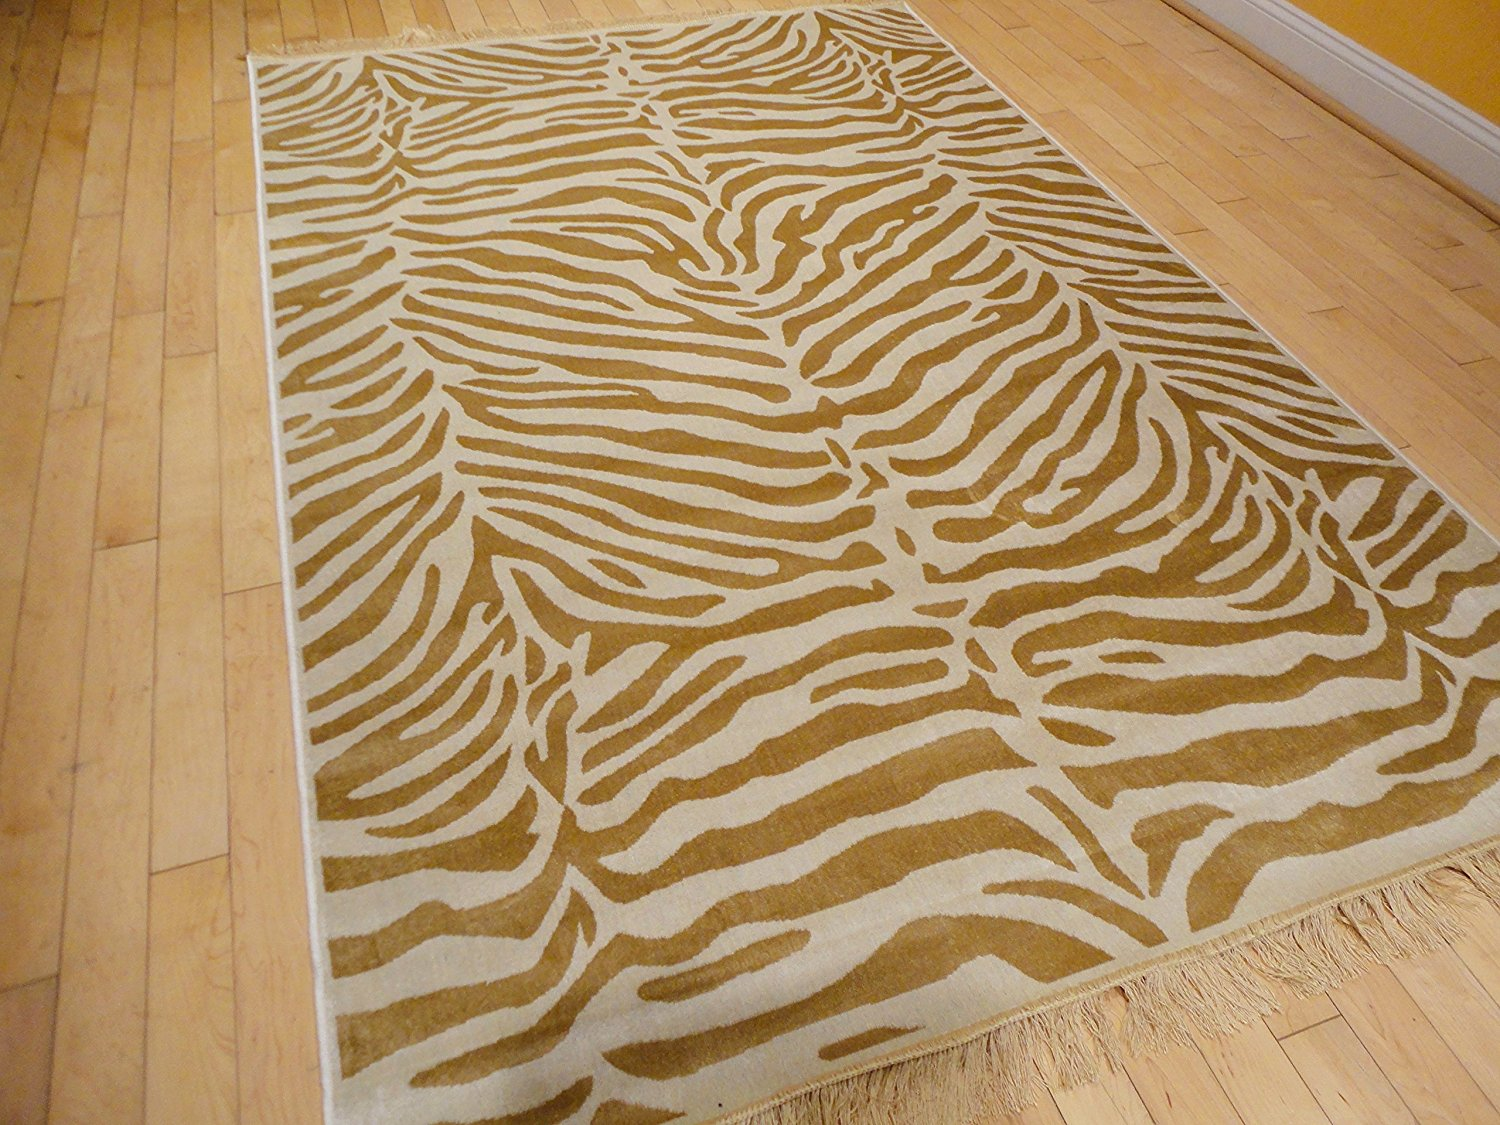 Cheap Rugs Zebra Print Find Rugs Zebra Print Deals On Line At